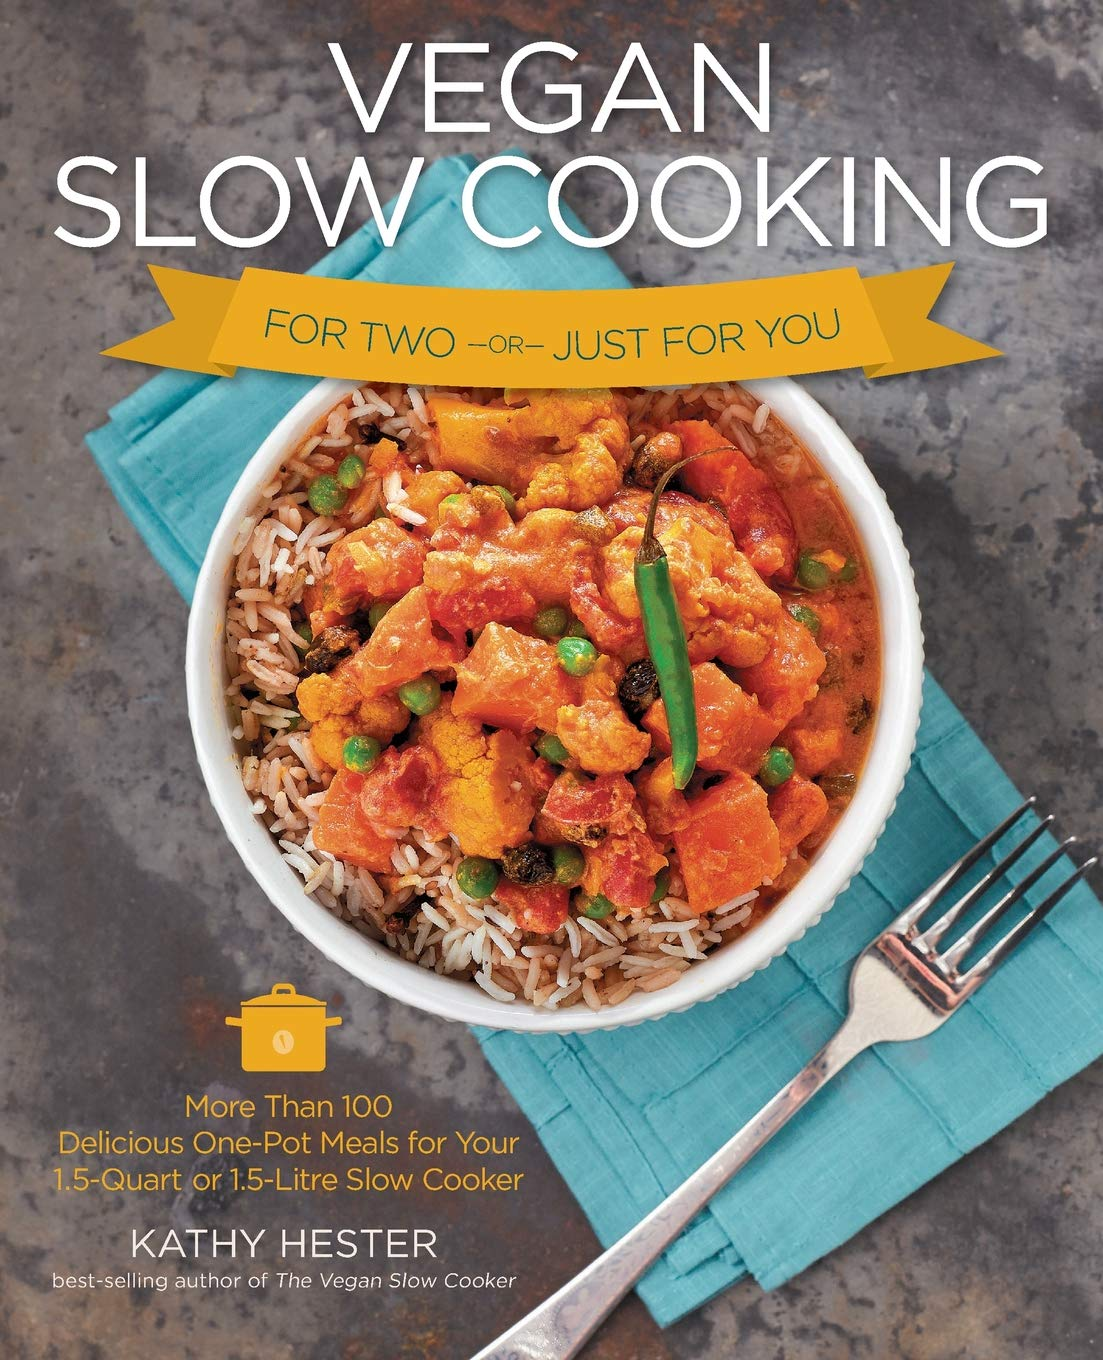 (Vegan) Kathy Hester. Vegan Slow Cooking for Two or Just for You.